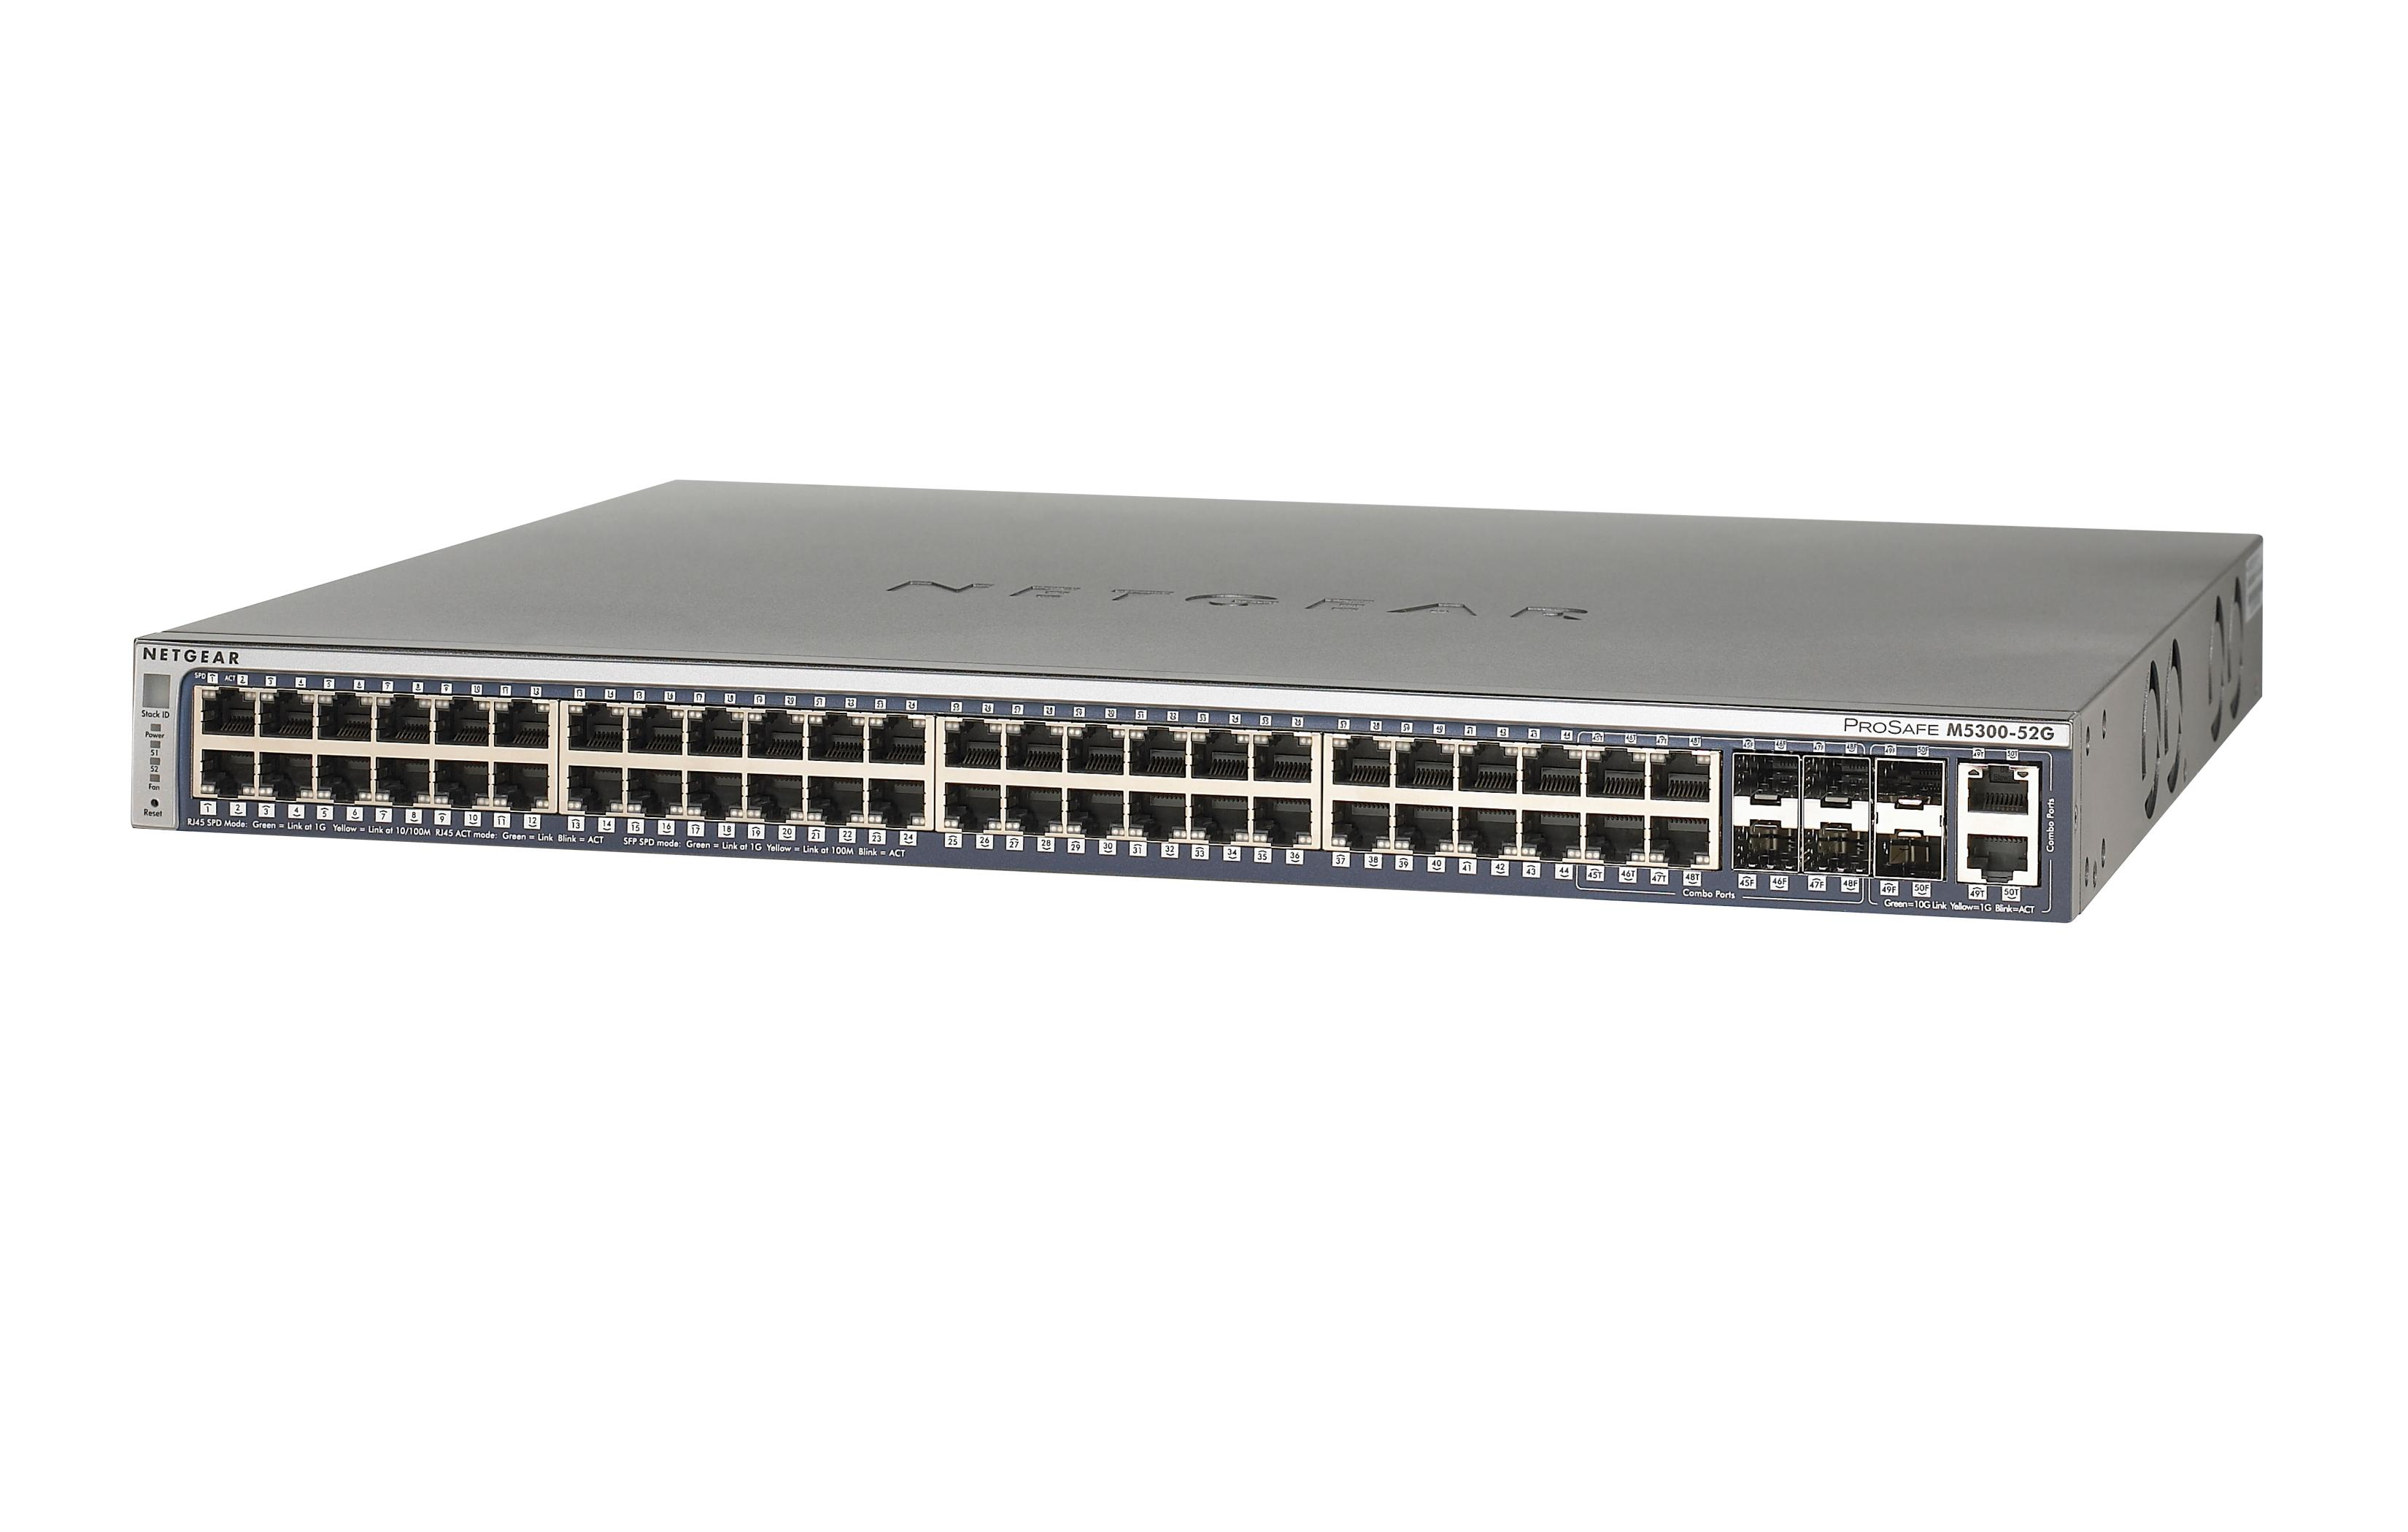 NETGEAR GSM7252S SWITCH WINDOWS 10 DRIVERS